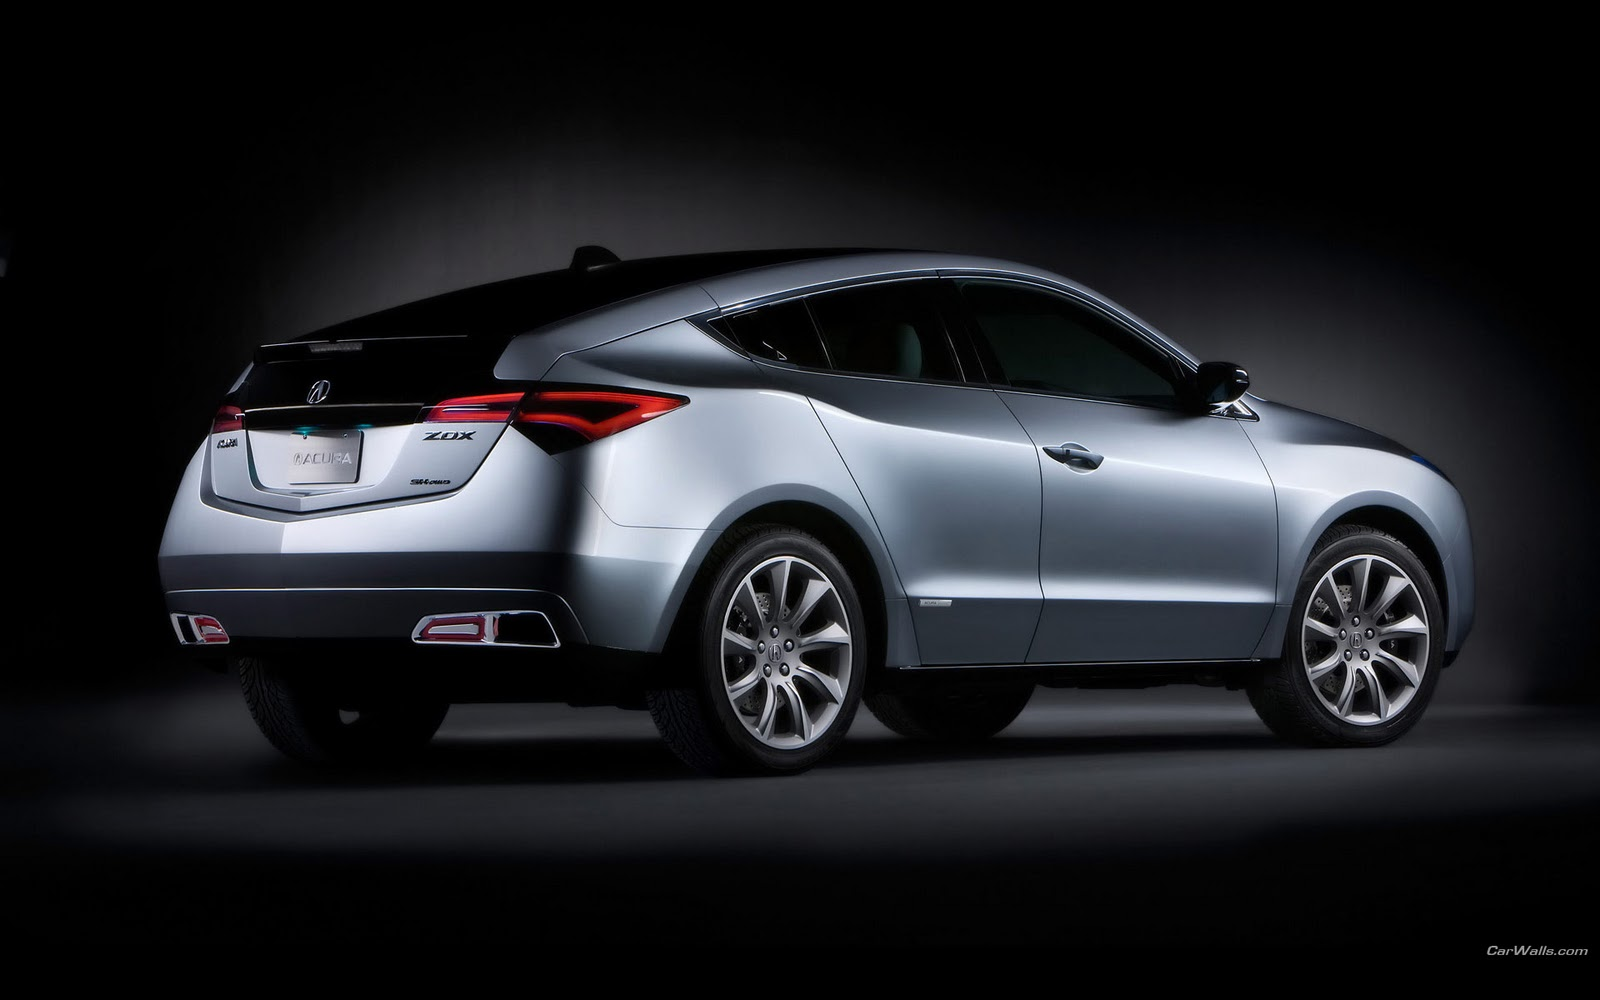 Car News And Cars Gallery: 2009 Acura ZDX Concept